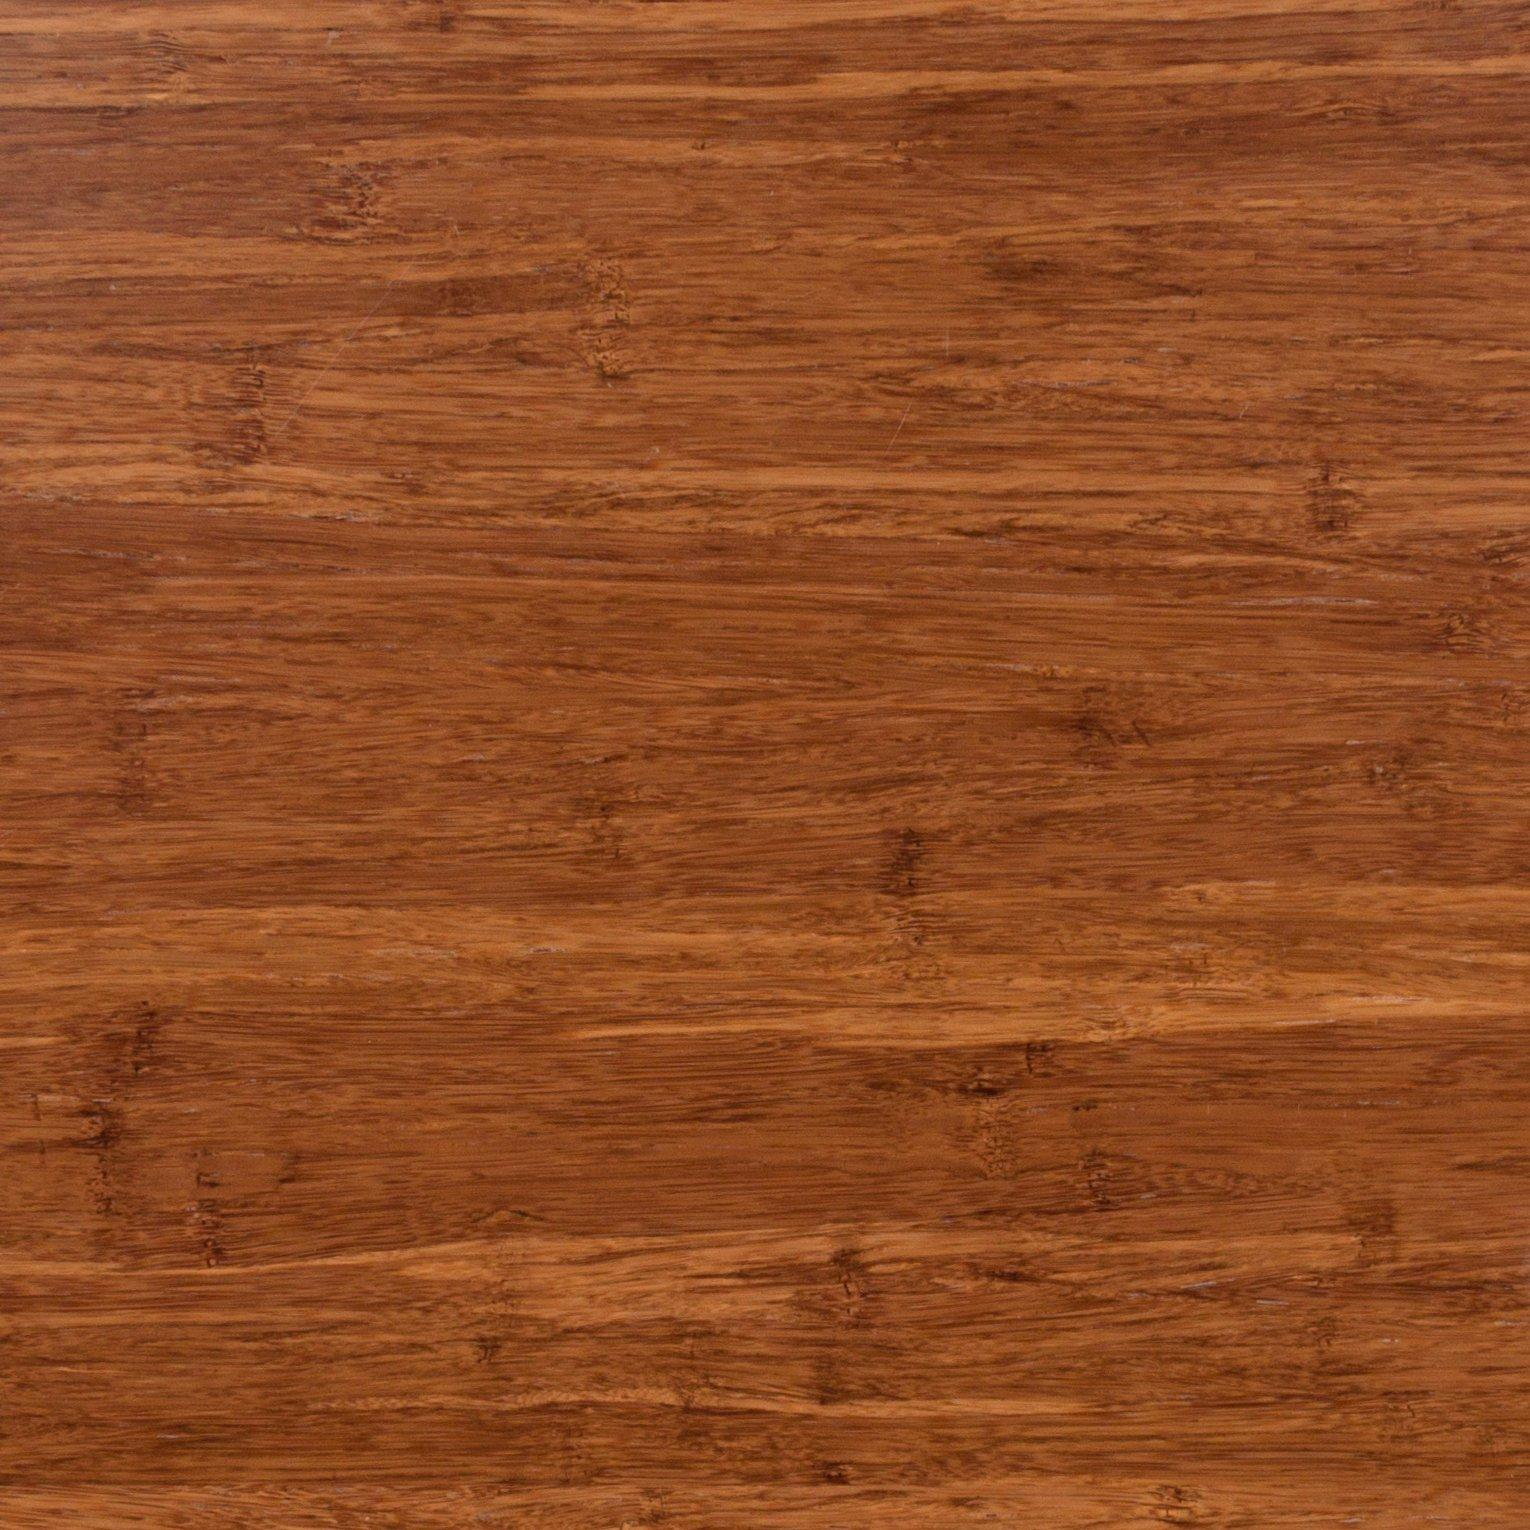 Bamboo Strand Butcher Block Countertop 12ft 144in X 25in Floor And Decor.